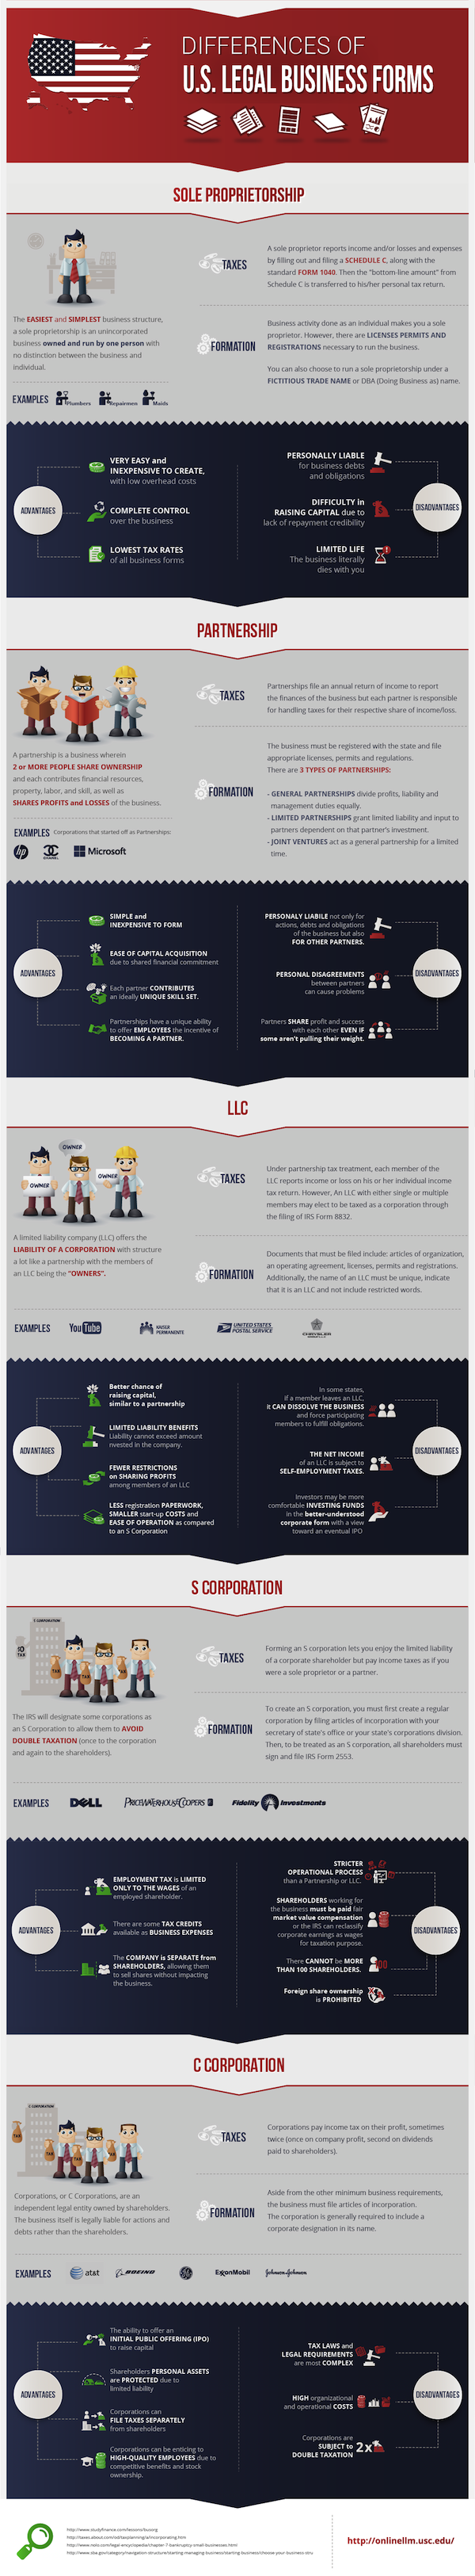 differences of us legal business forms